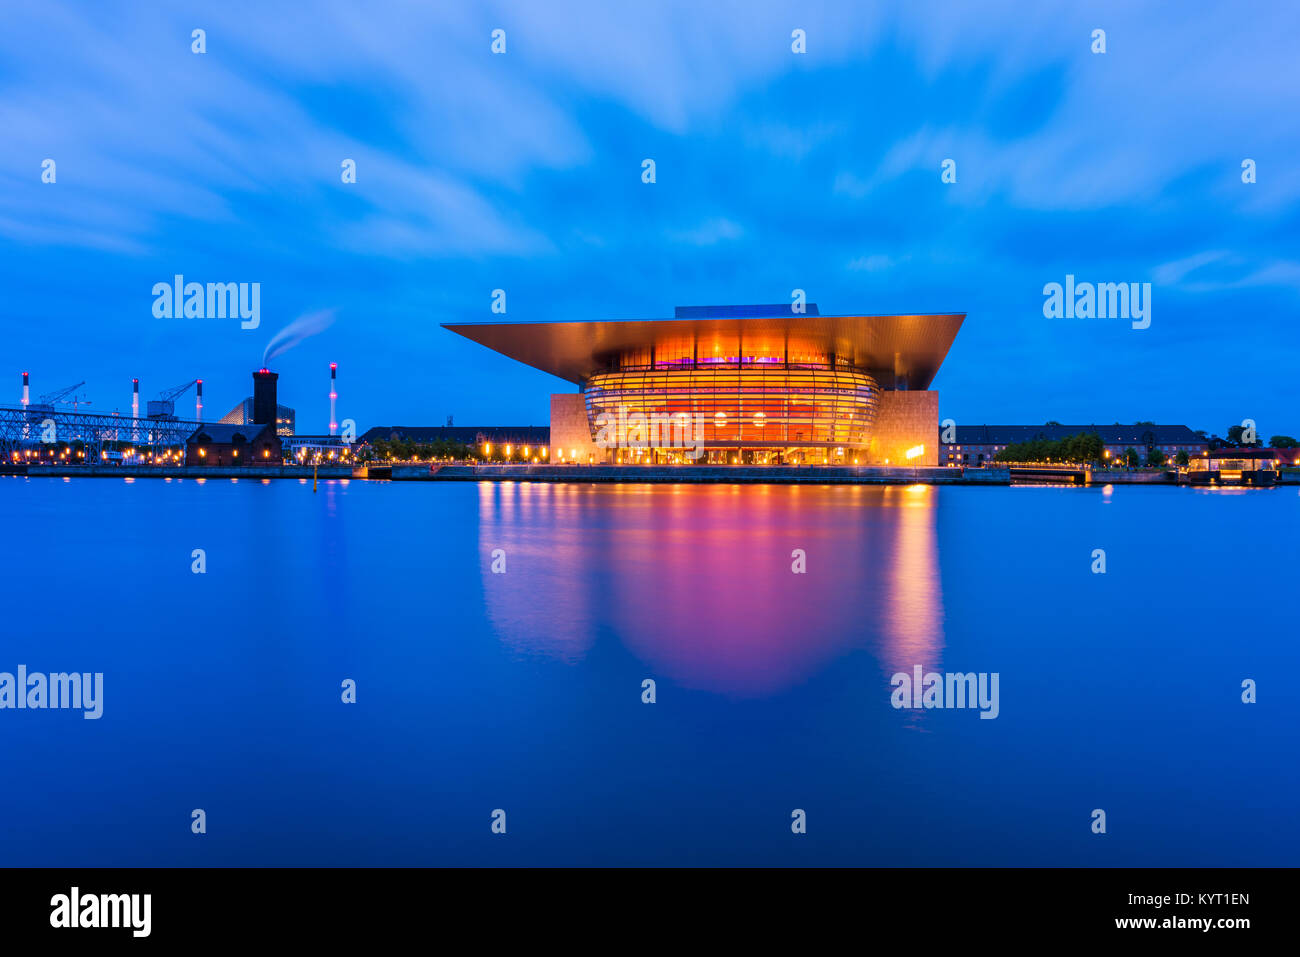 Copenhagen Opera House in Copenhagen, Denmark. It is the national opera house of Denmark and was completed in 2004. - Stock Image